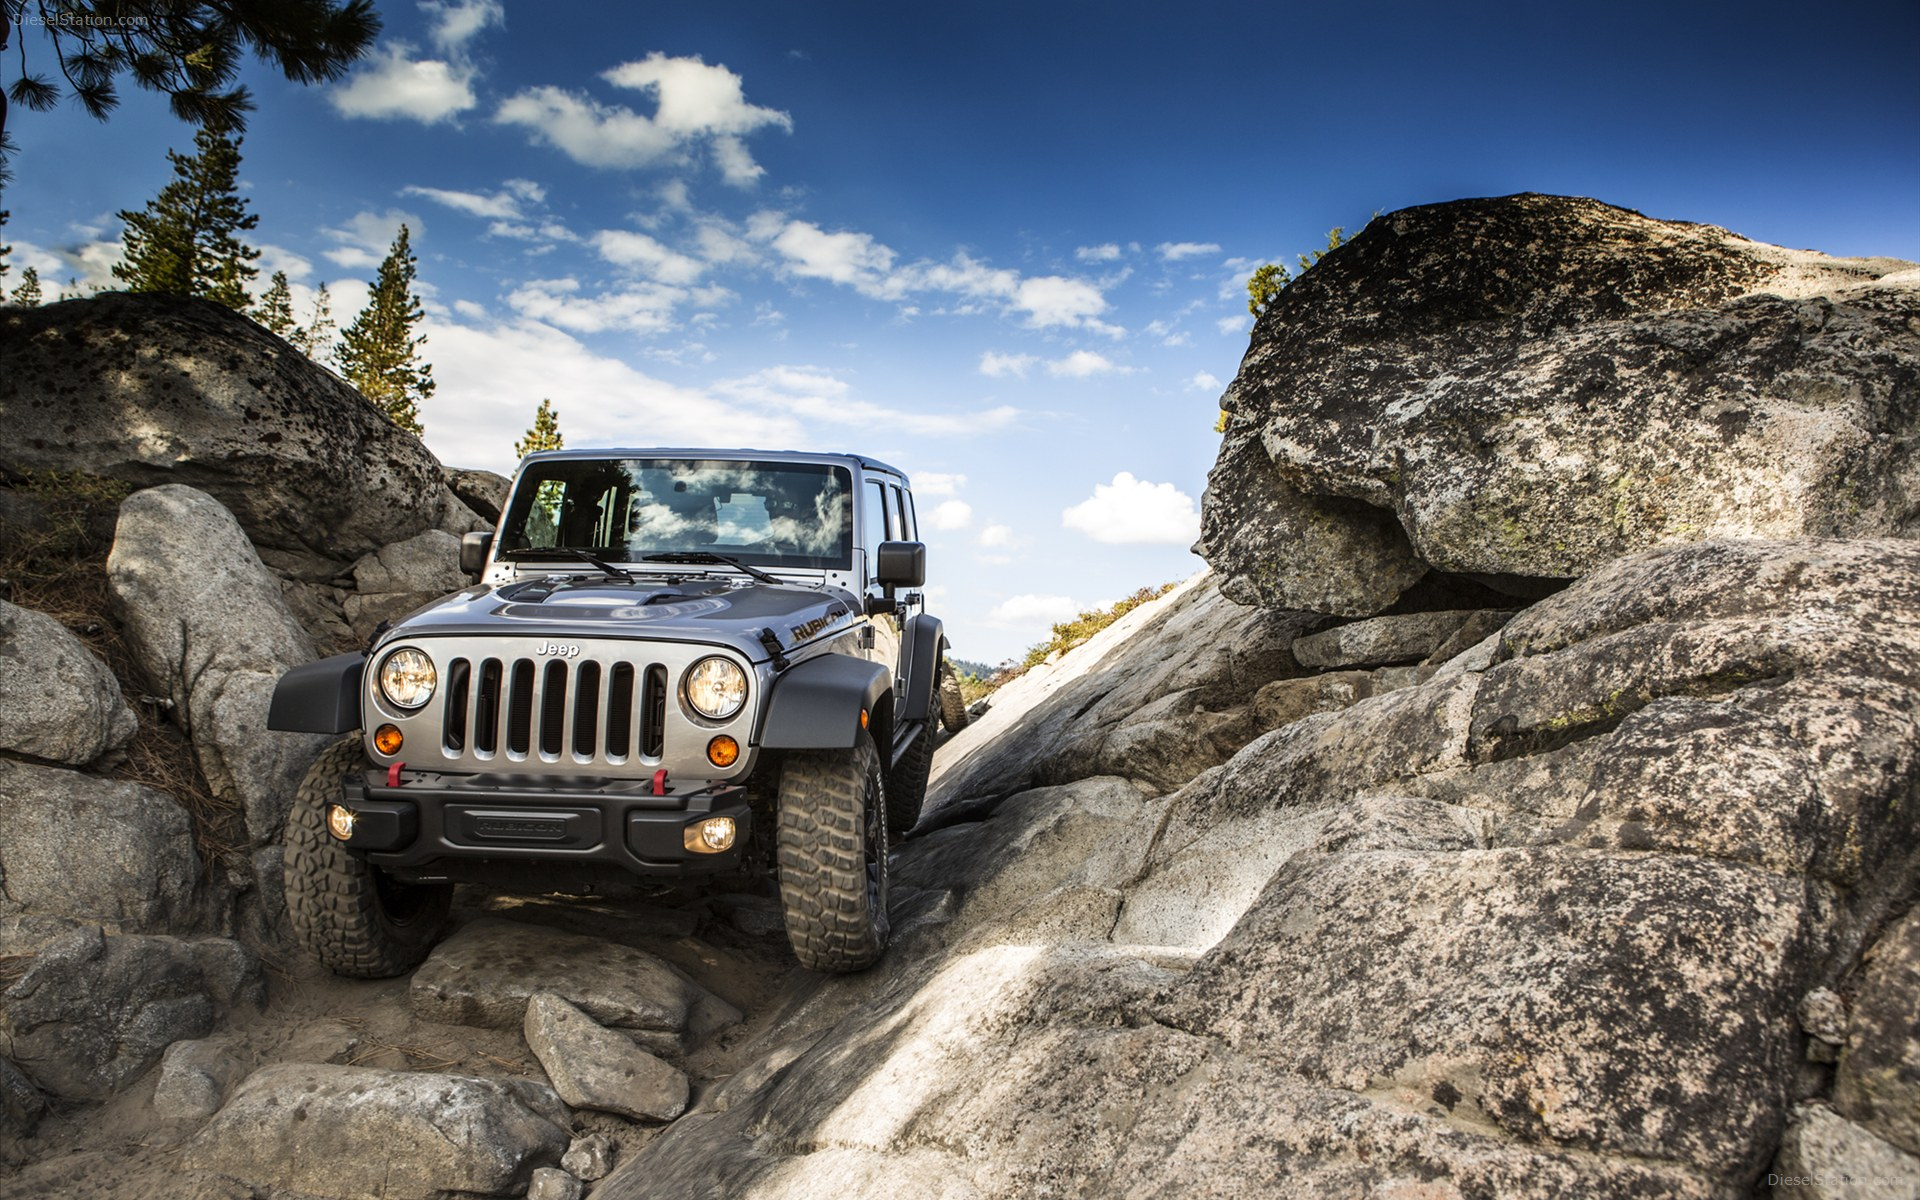 desktop hd wallpaper 5 cars mgzn wallpaper jeep wrangler wallpaper 1920x1200